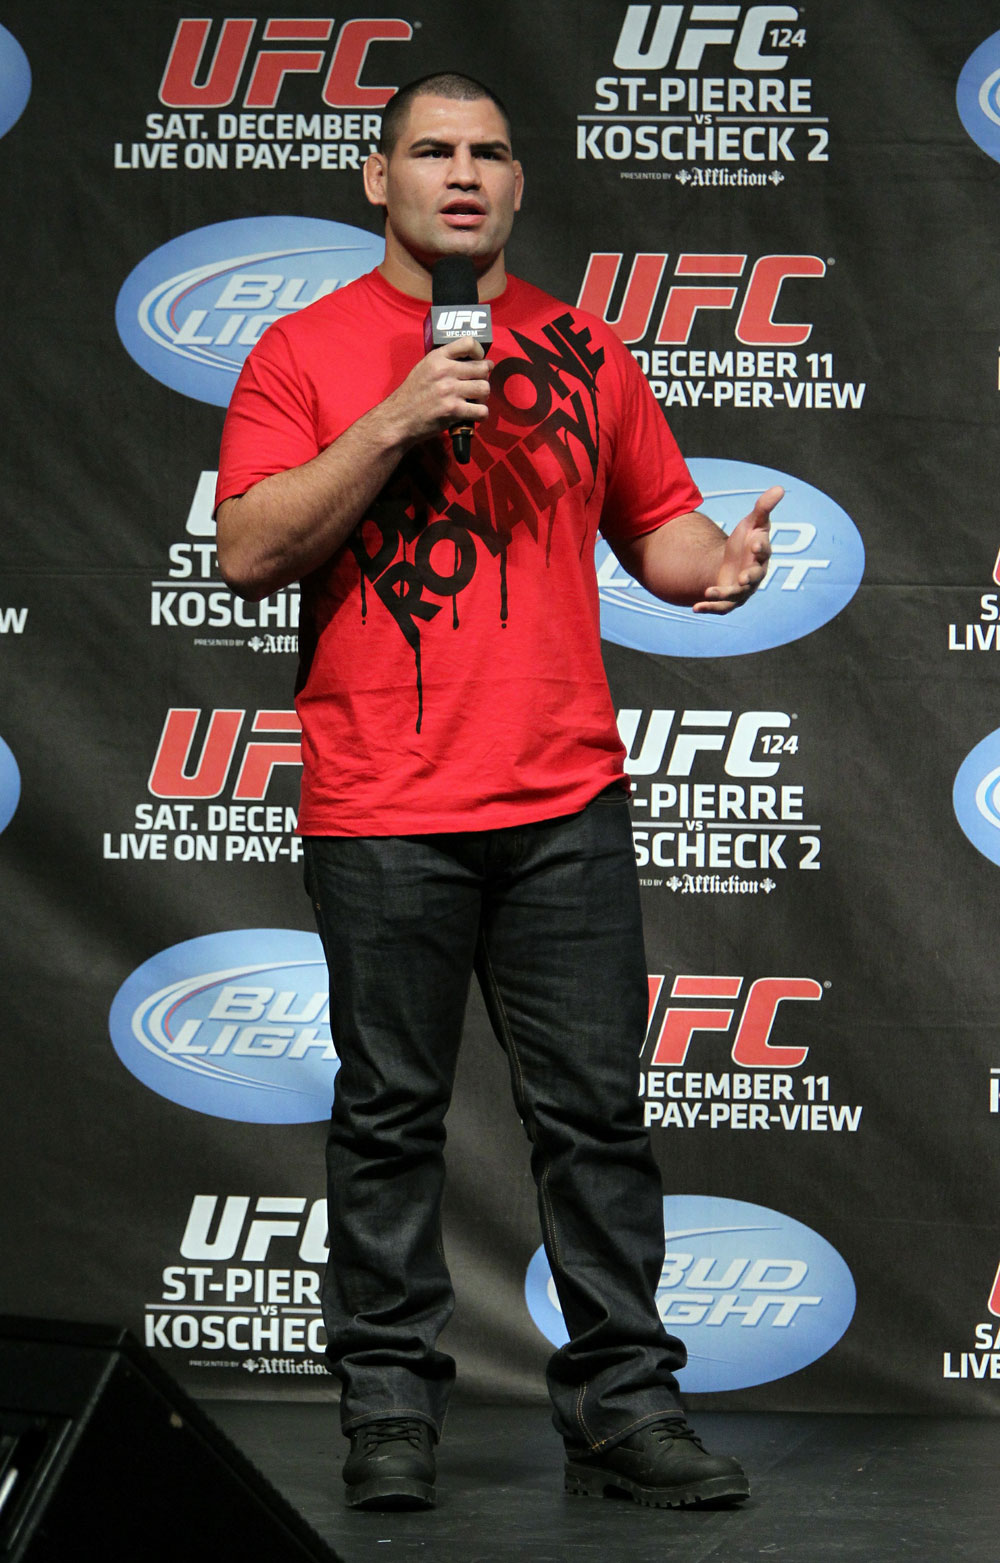 UFC 124 Weigh-in: Cain Velasquez